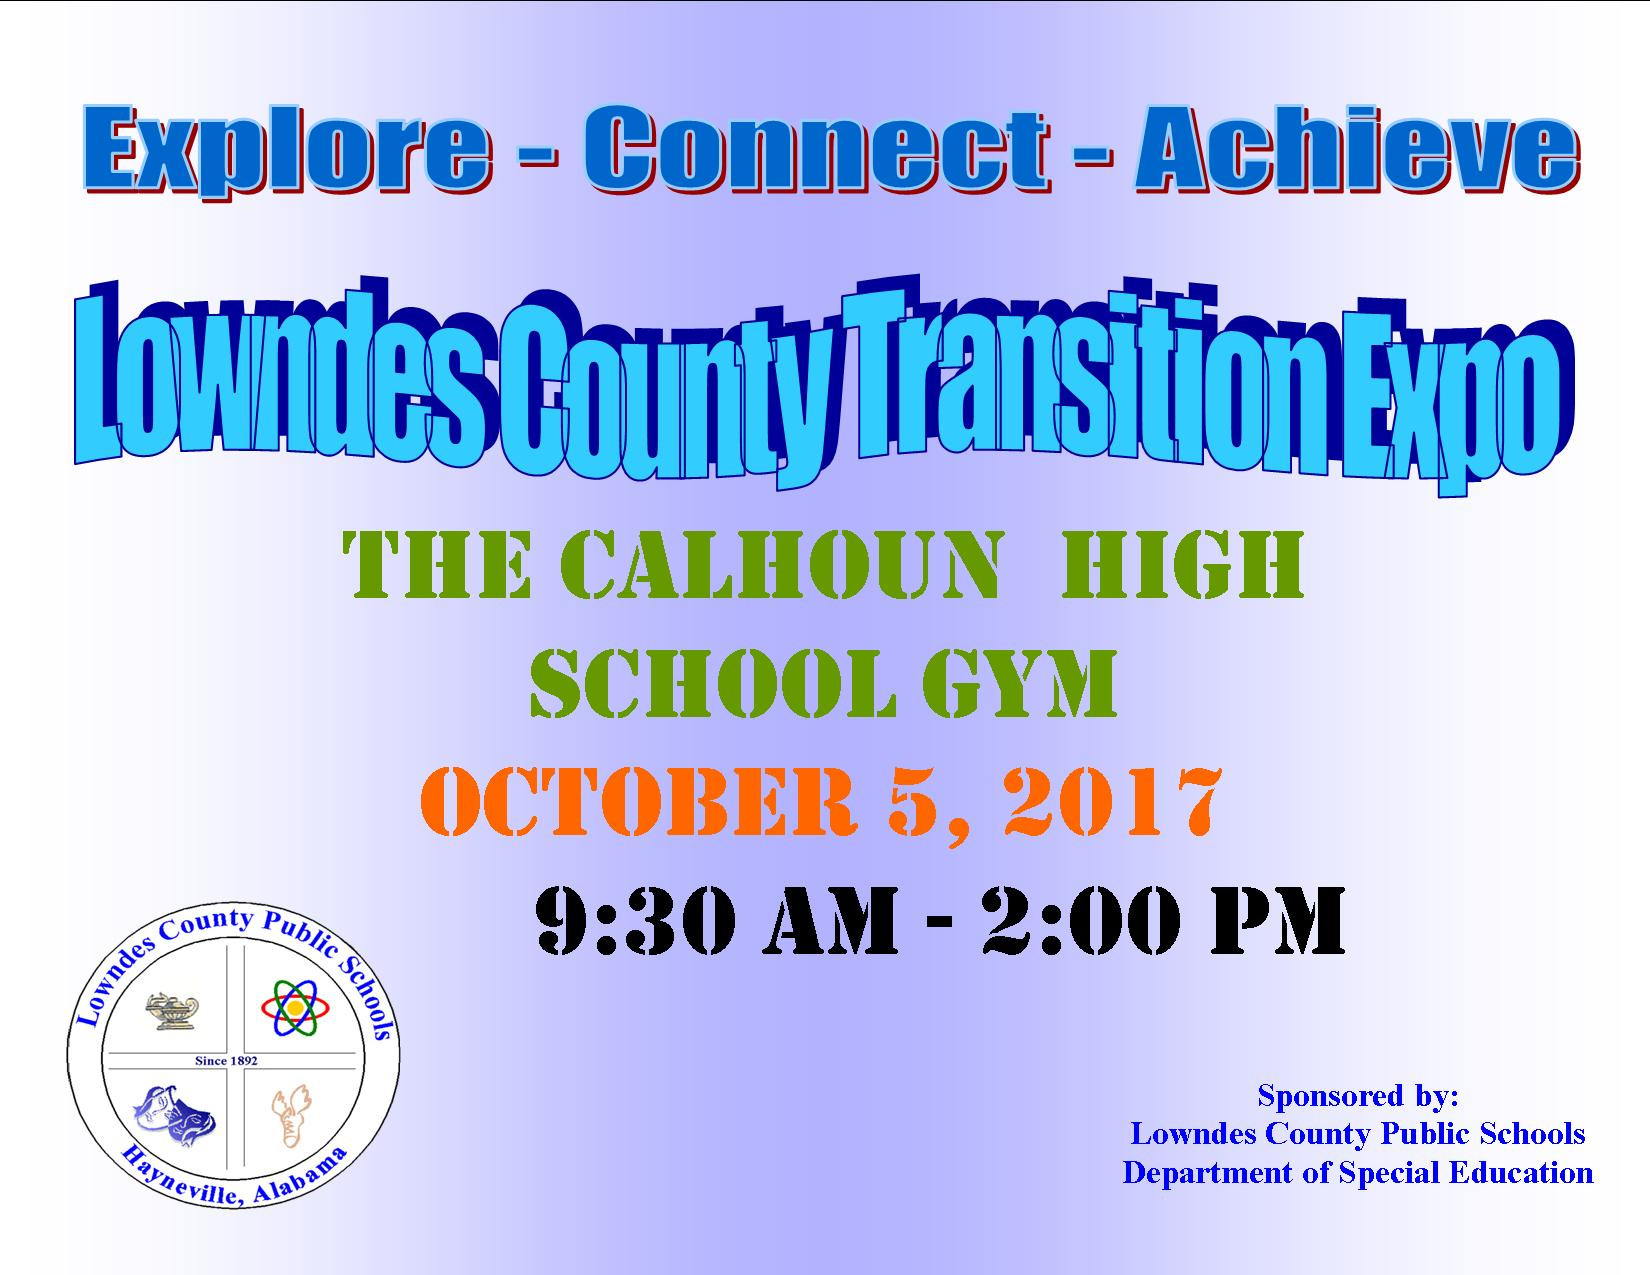 Transition Expo